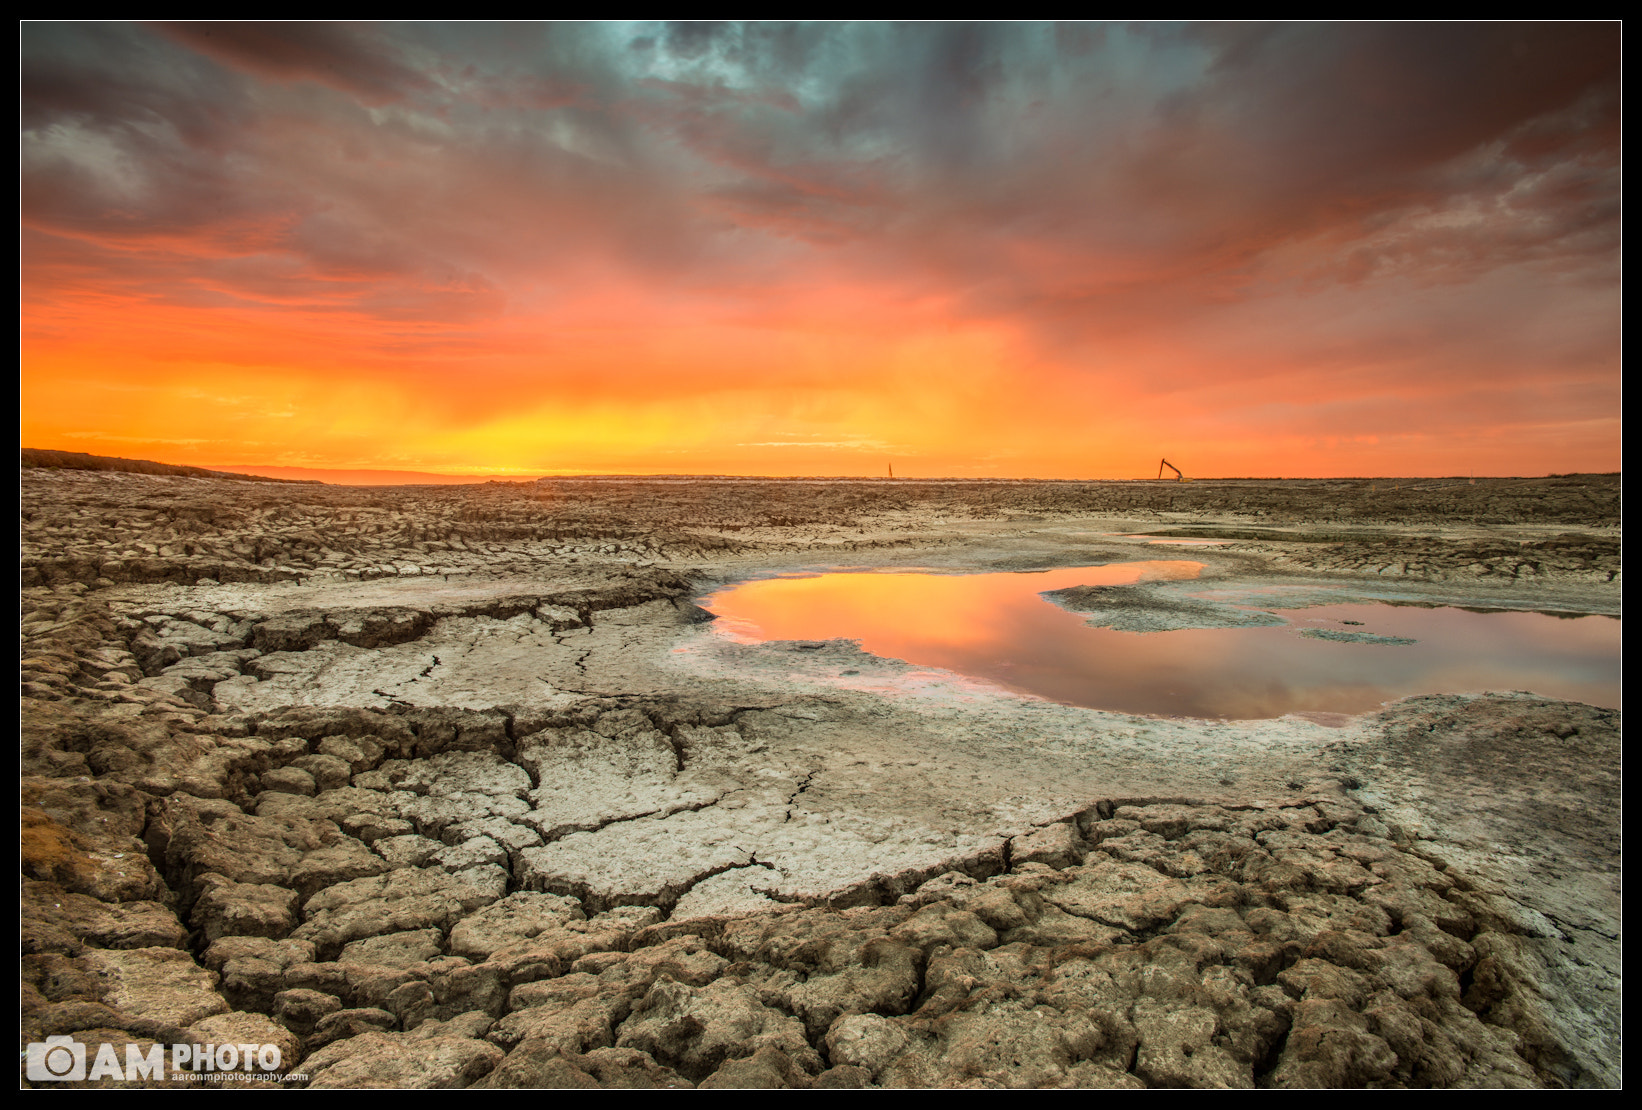 Photograph Drought's Bain by Aaron M on 500px